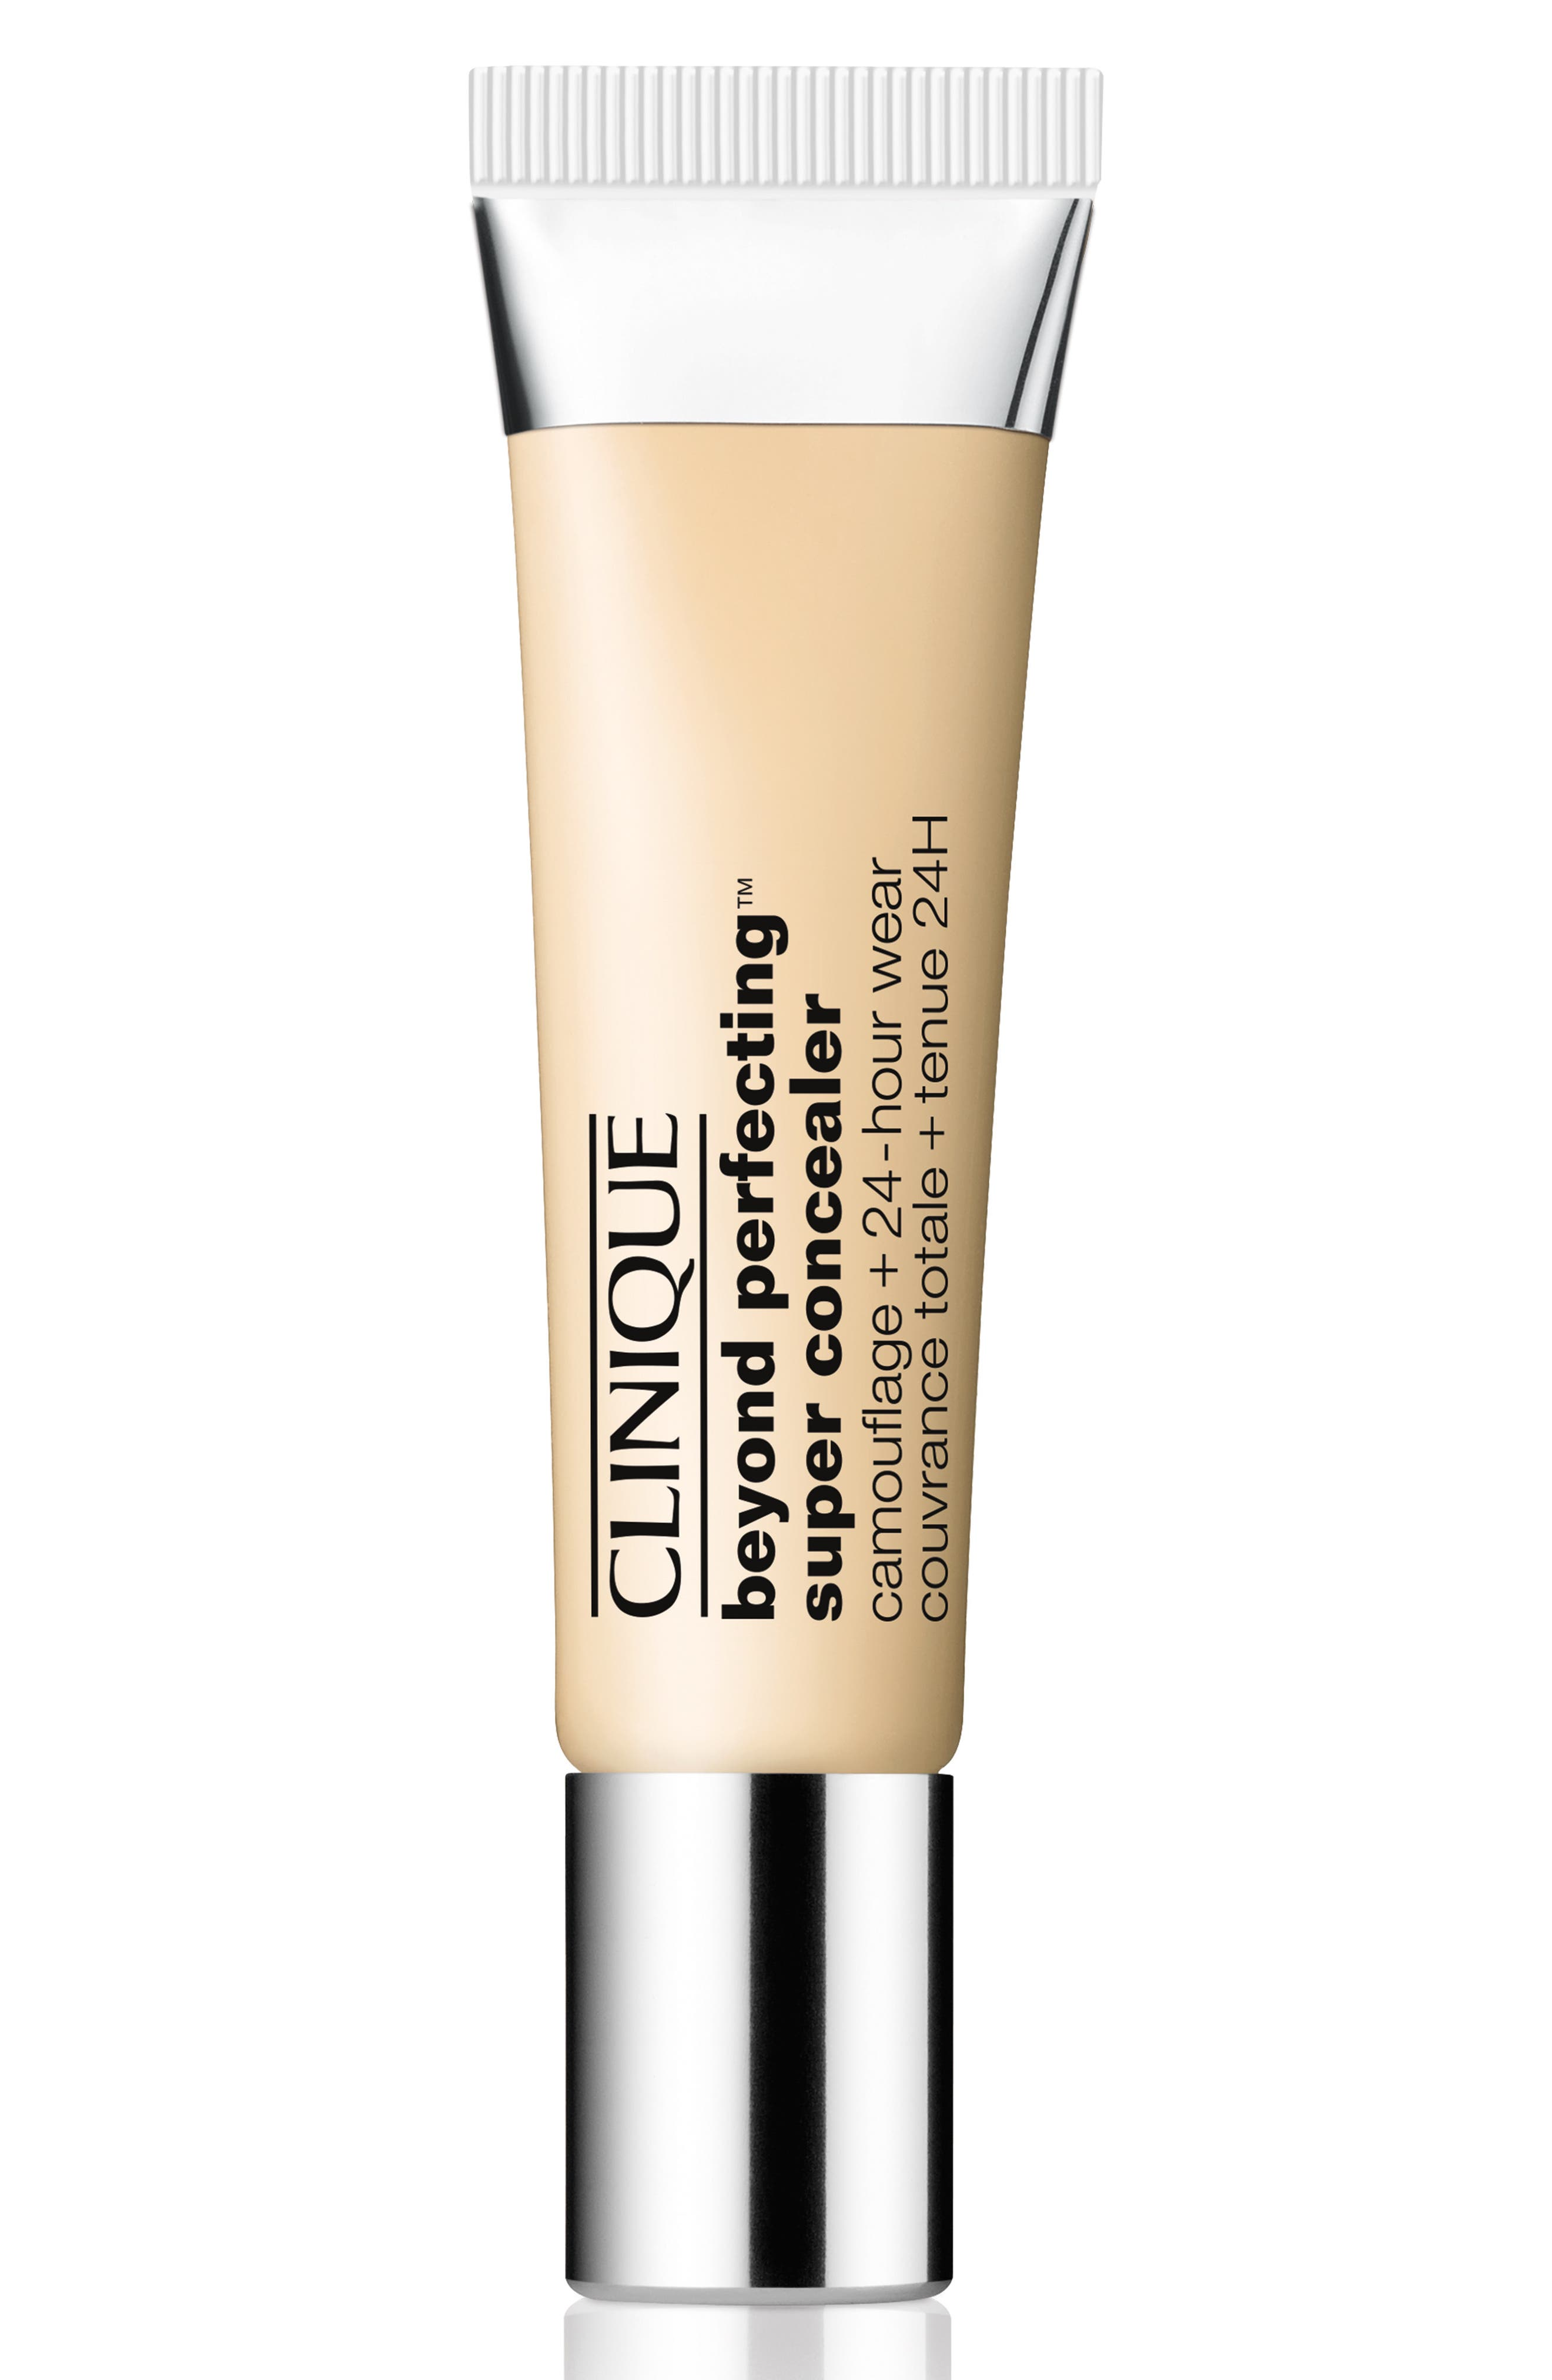 Main Image - Clinique Beyond Perfecting Super Concealer Camouflage + 24-Hour Wear